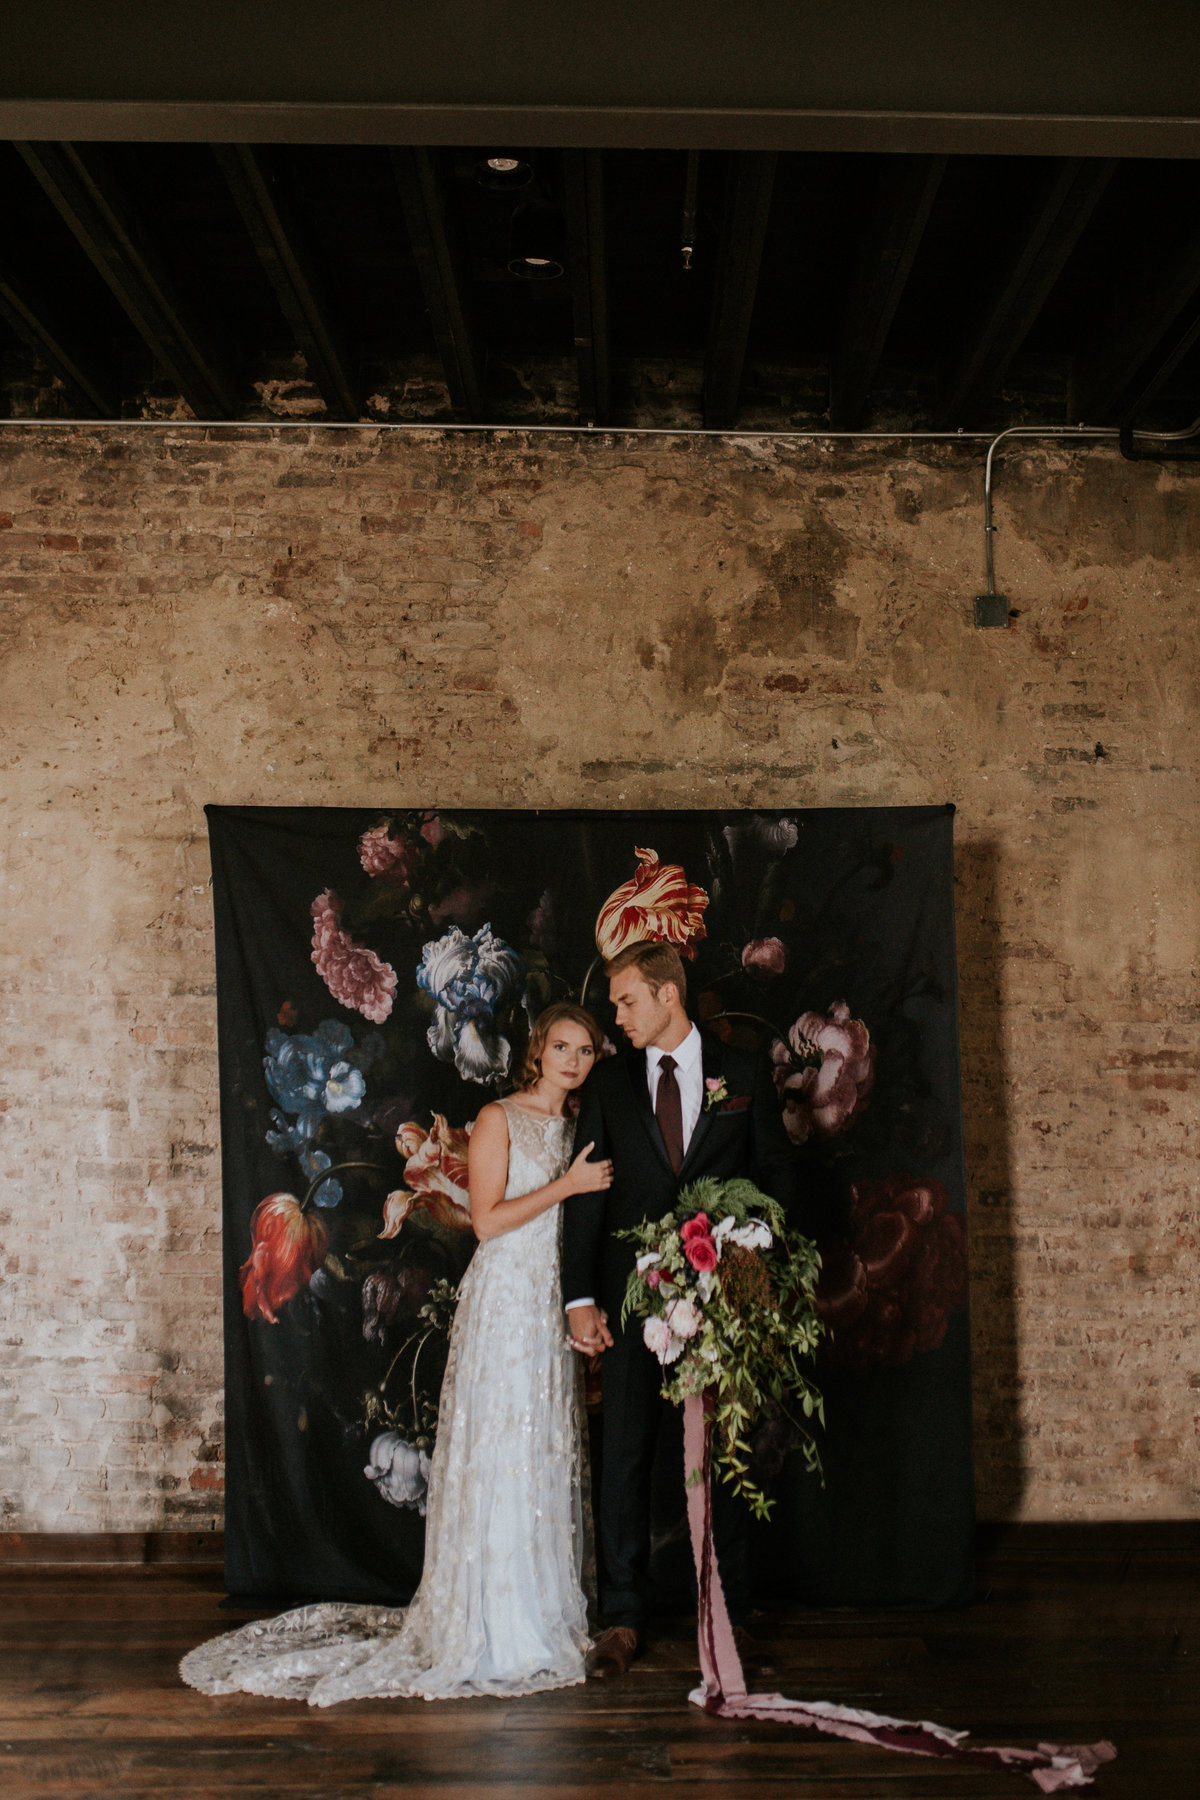 Raela is a wedding planner in Nashville, TN focusing on organic design and stunning details.